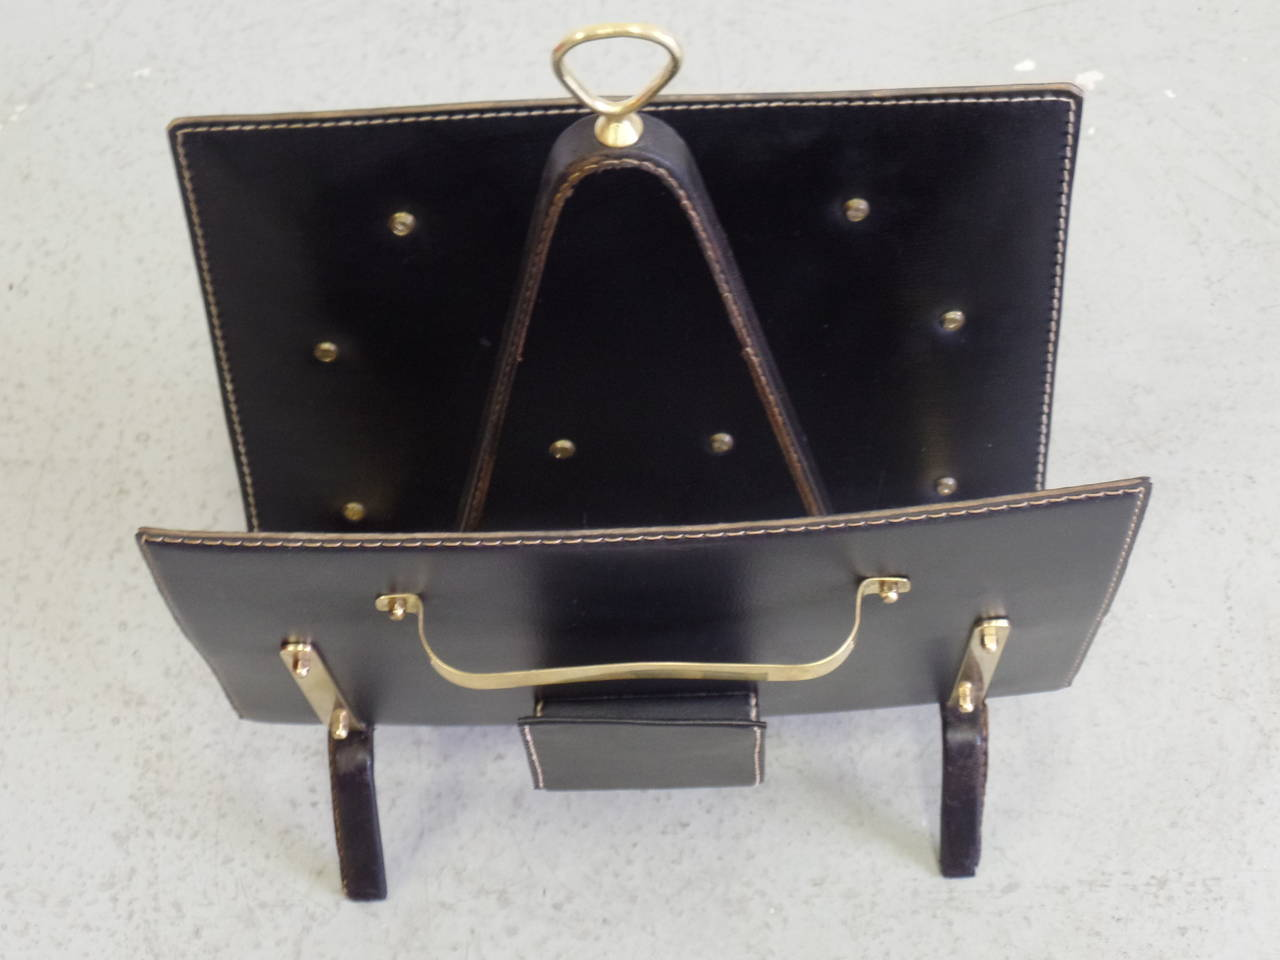 Mid-Century Modern French Hand-Stitched Leather Magazine Stand by Jacques Adnet For Sale